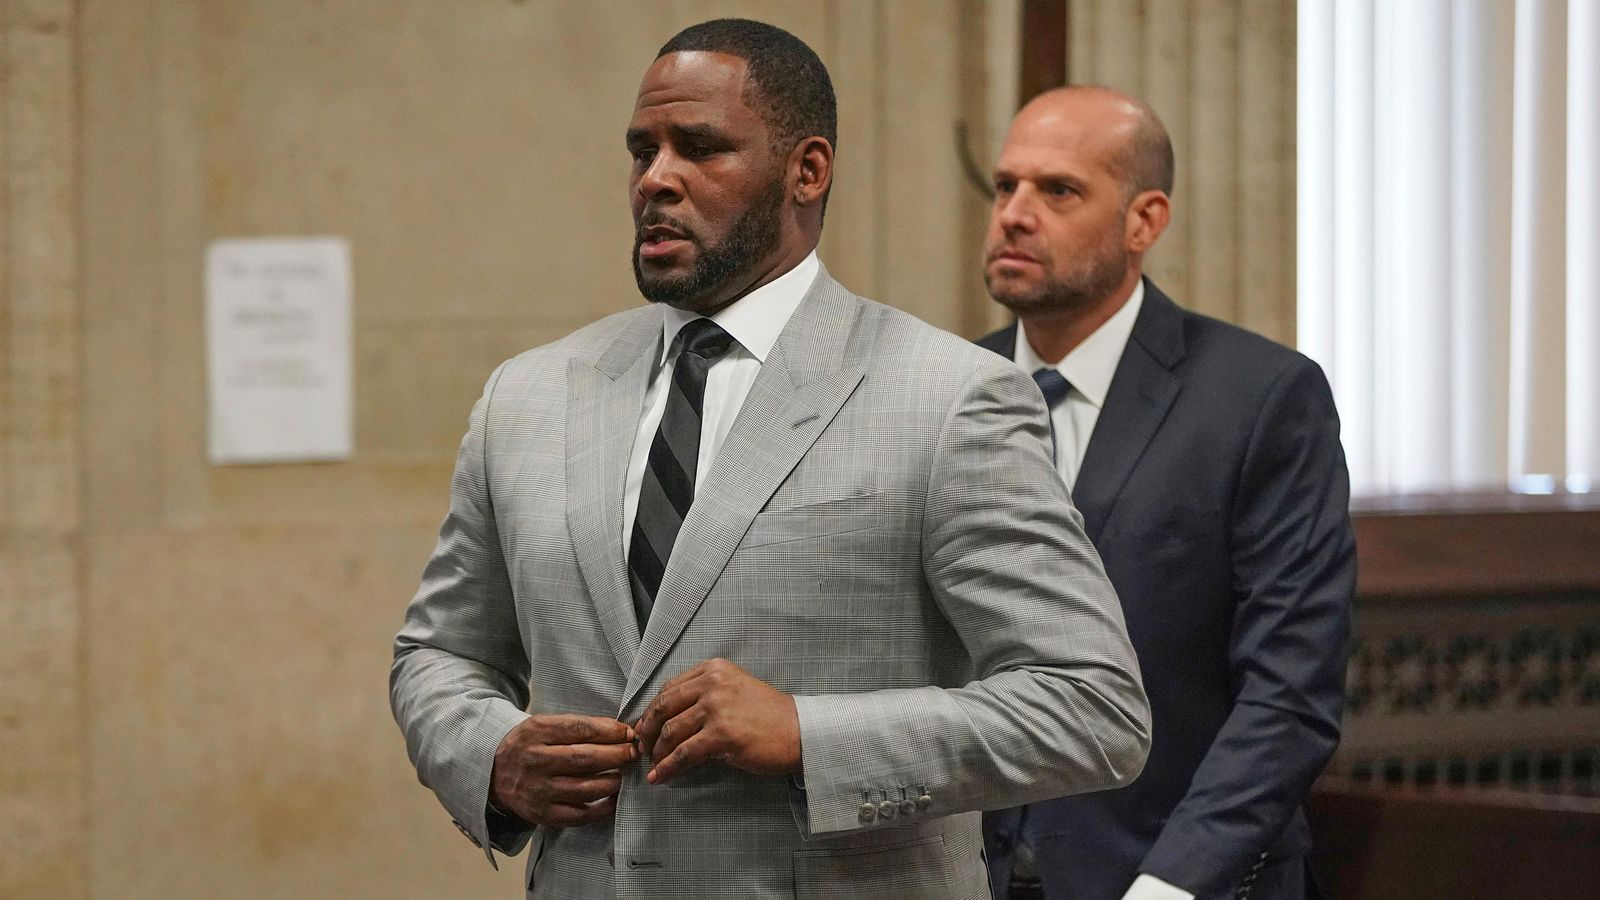 FILE - In this  June 6, 2019, file photo, singer R. Kelly pleaded not guilty to 11 additional sex-related felonies during a court hearing before Judge Lawrence Flood at Leighton Criminal Court Building in Chicago.{ } (E. Jason Wambsgans/Chicago Tribune via AP, Pool)